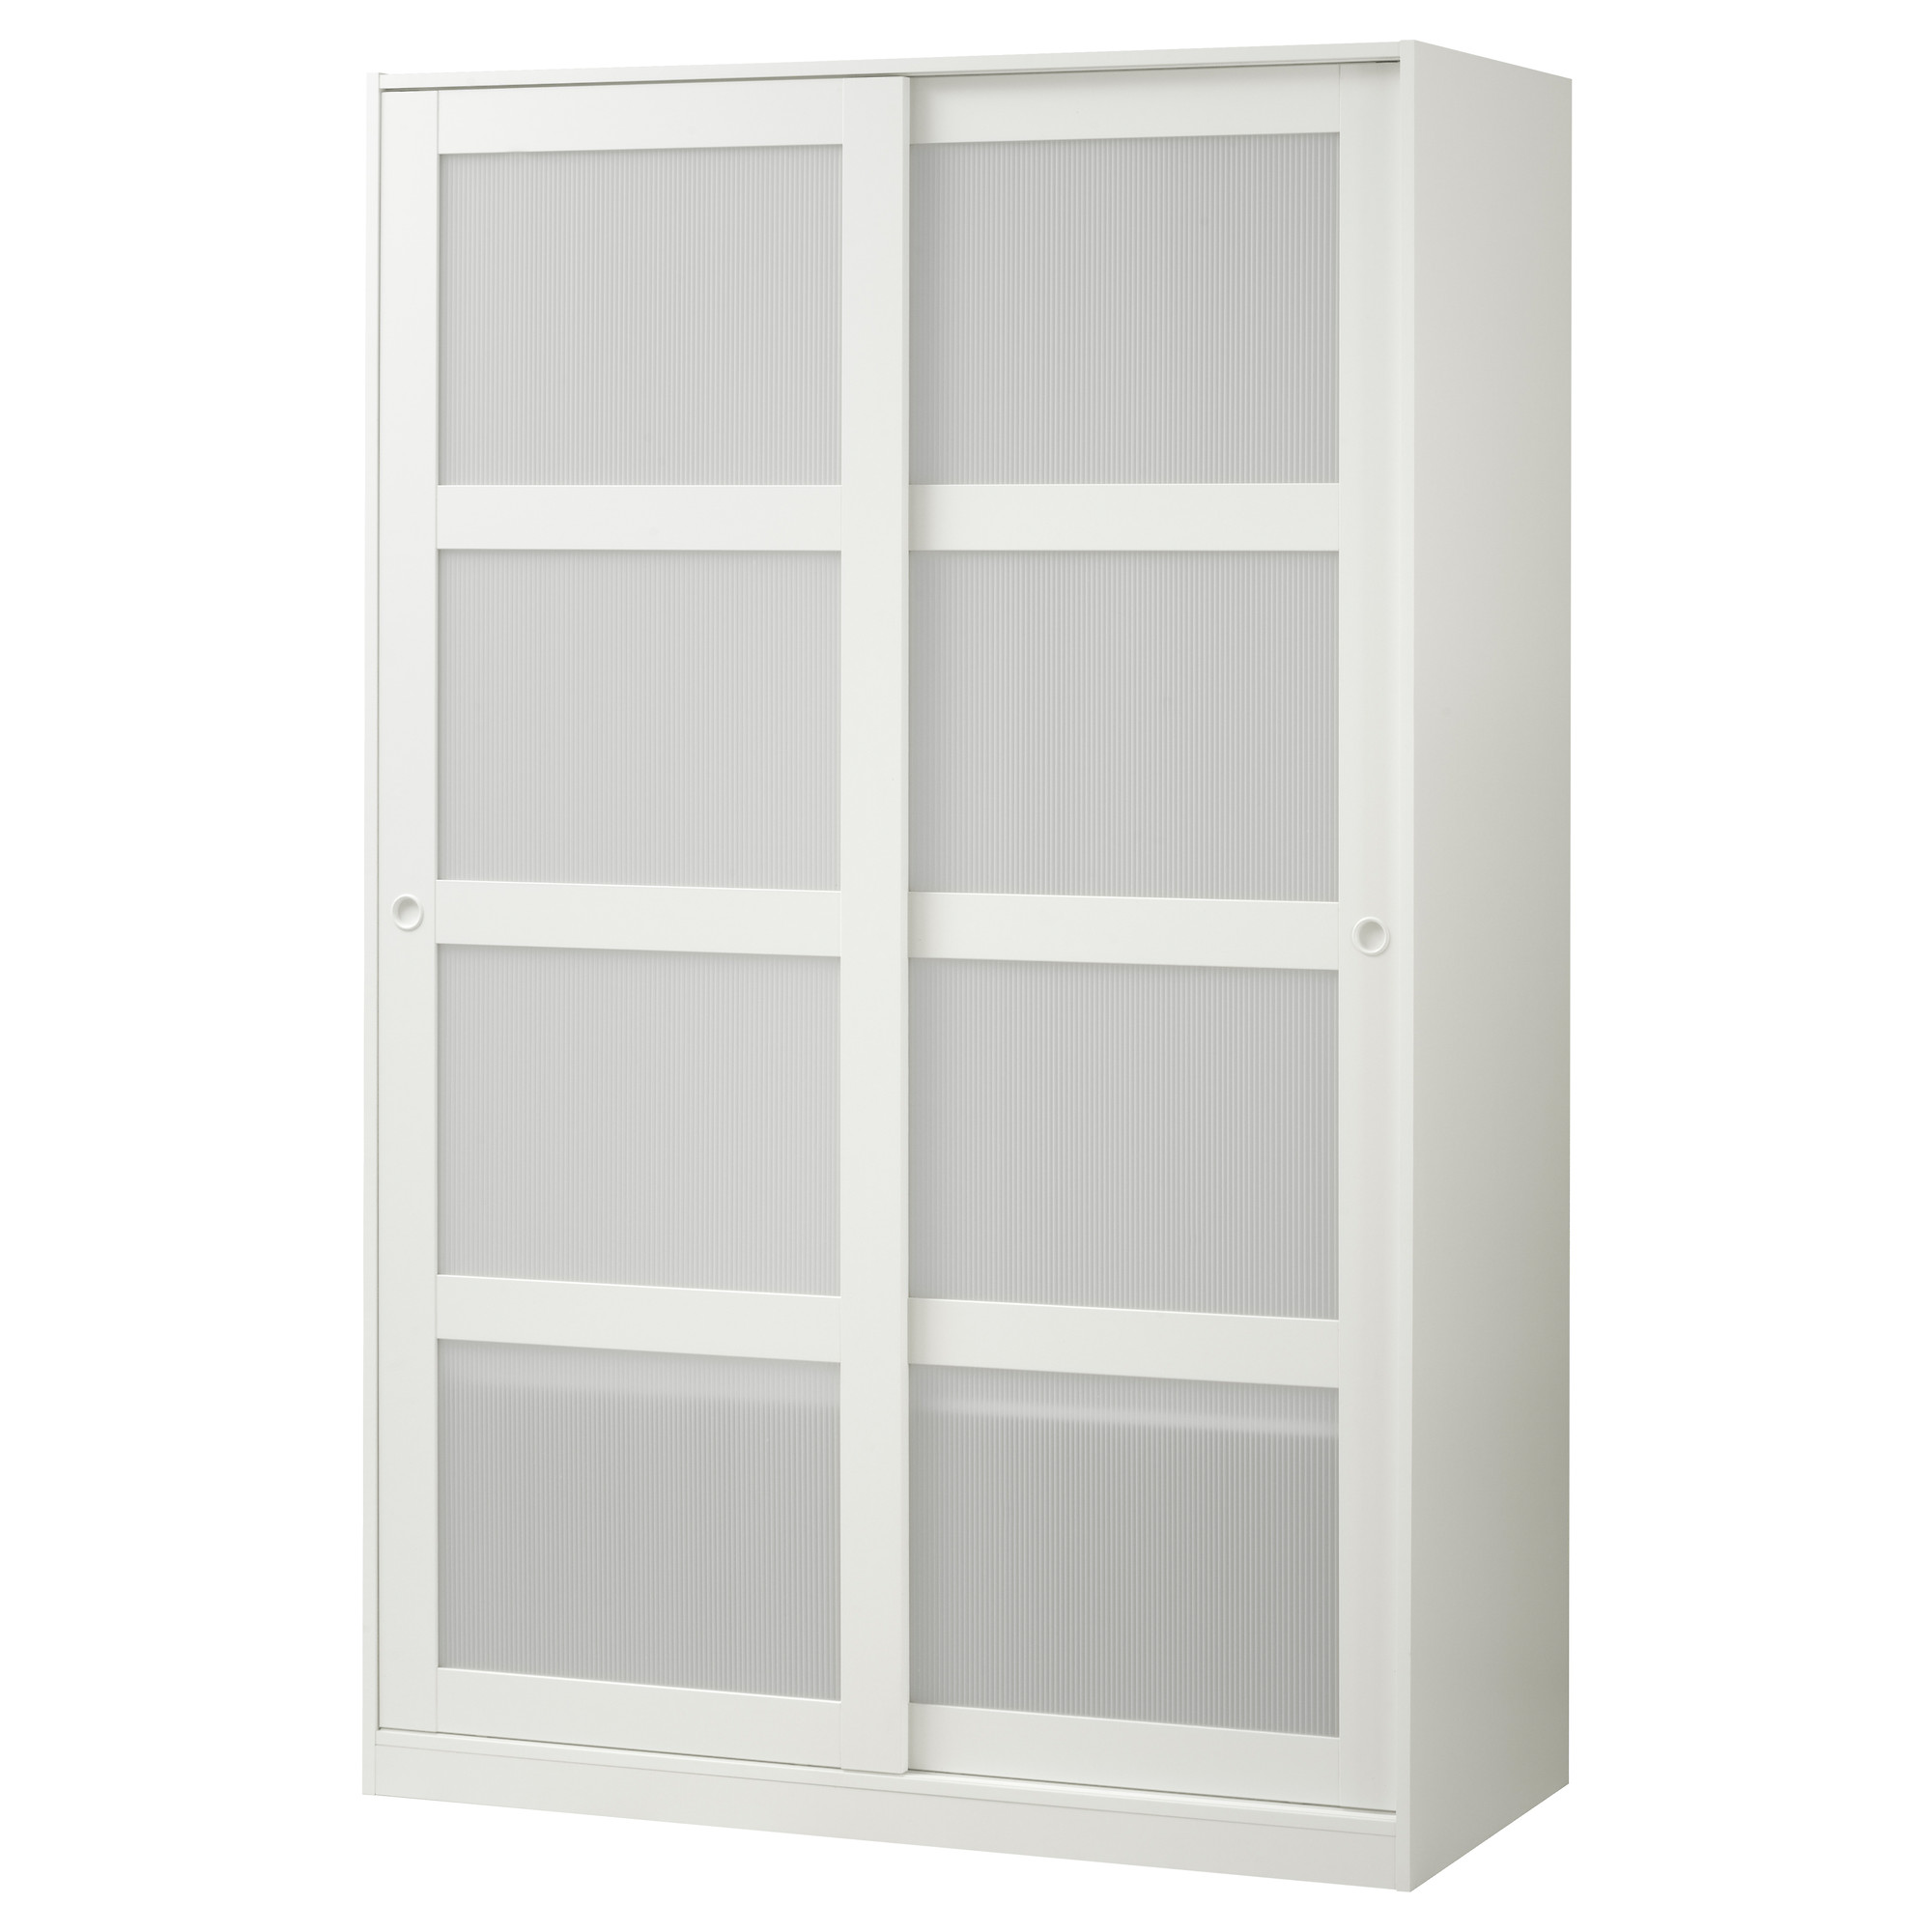 Ikea Wardrobe | Ikea Wardrobes for Small Spaces | Ikea Mirror Wardrobe